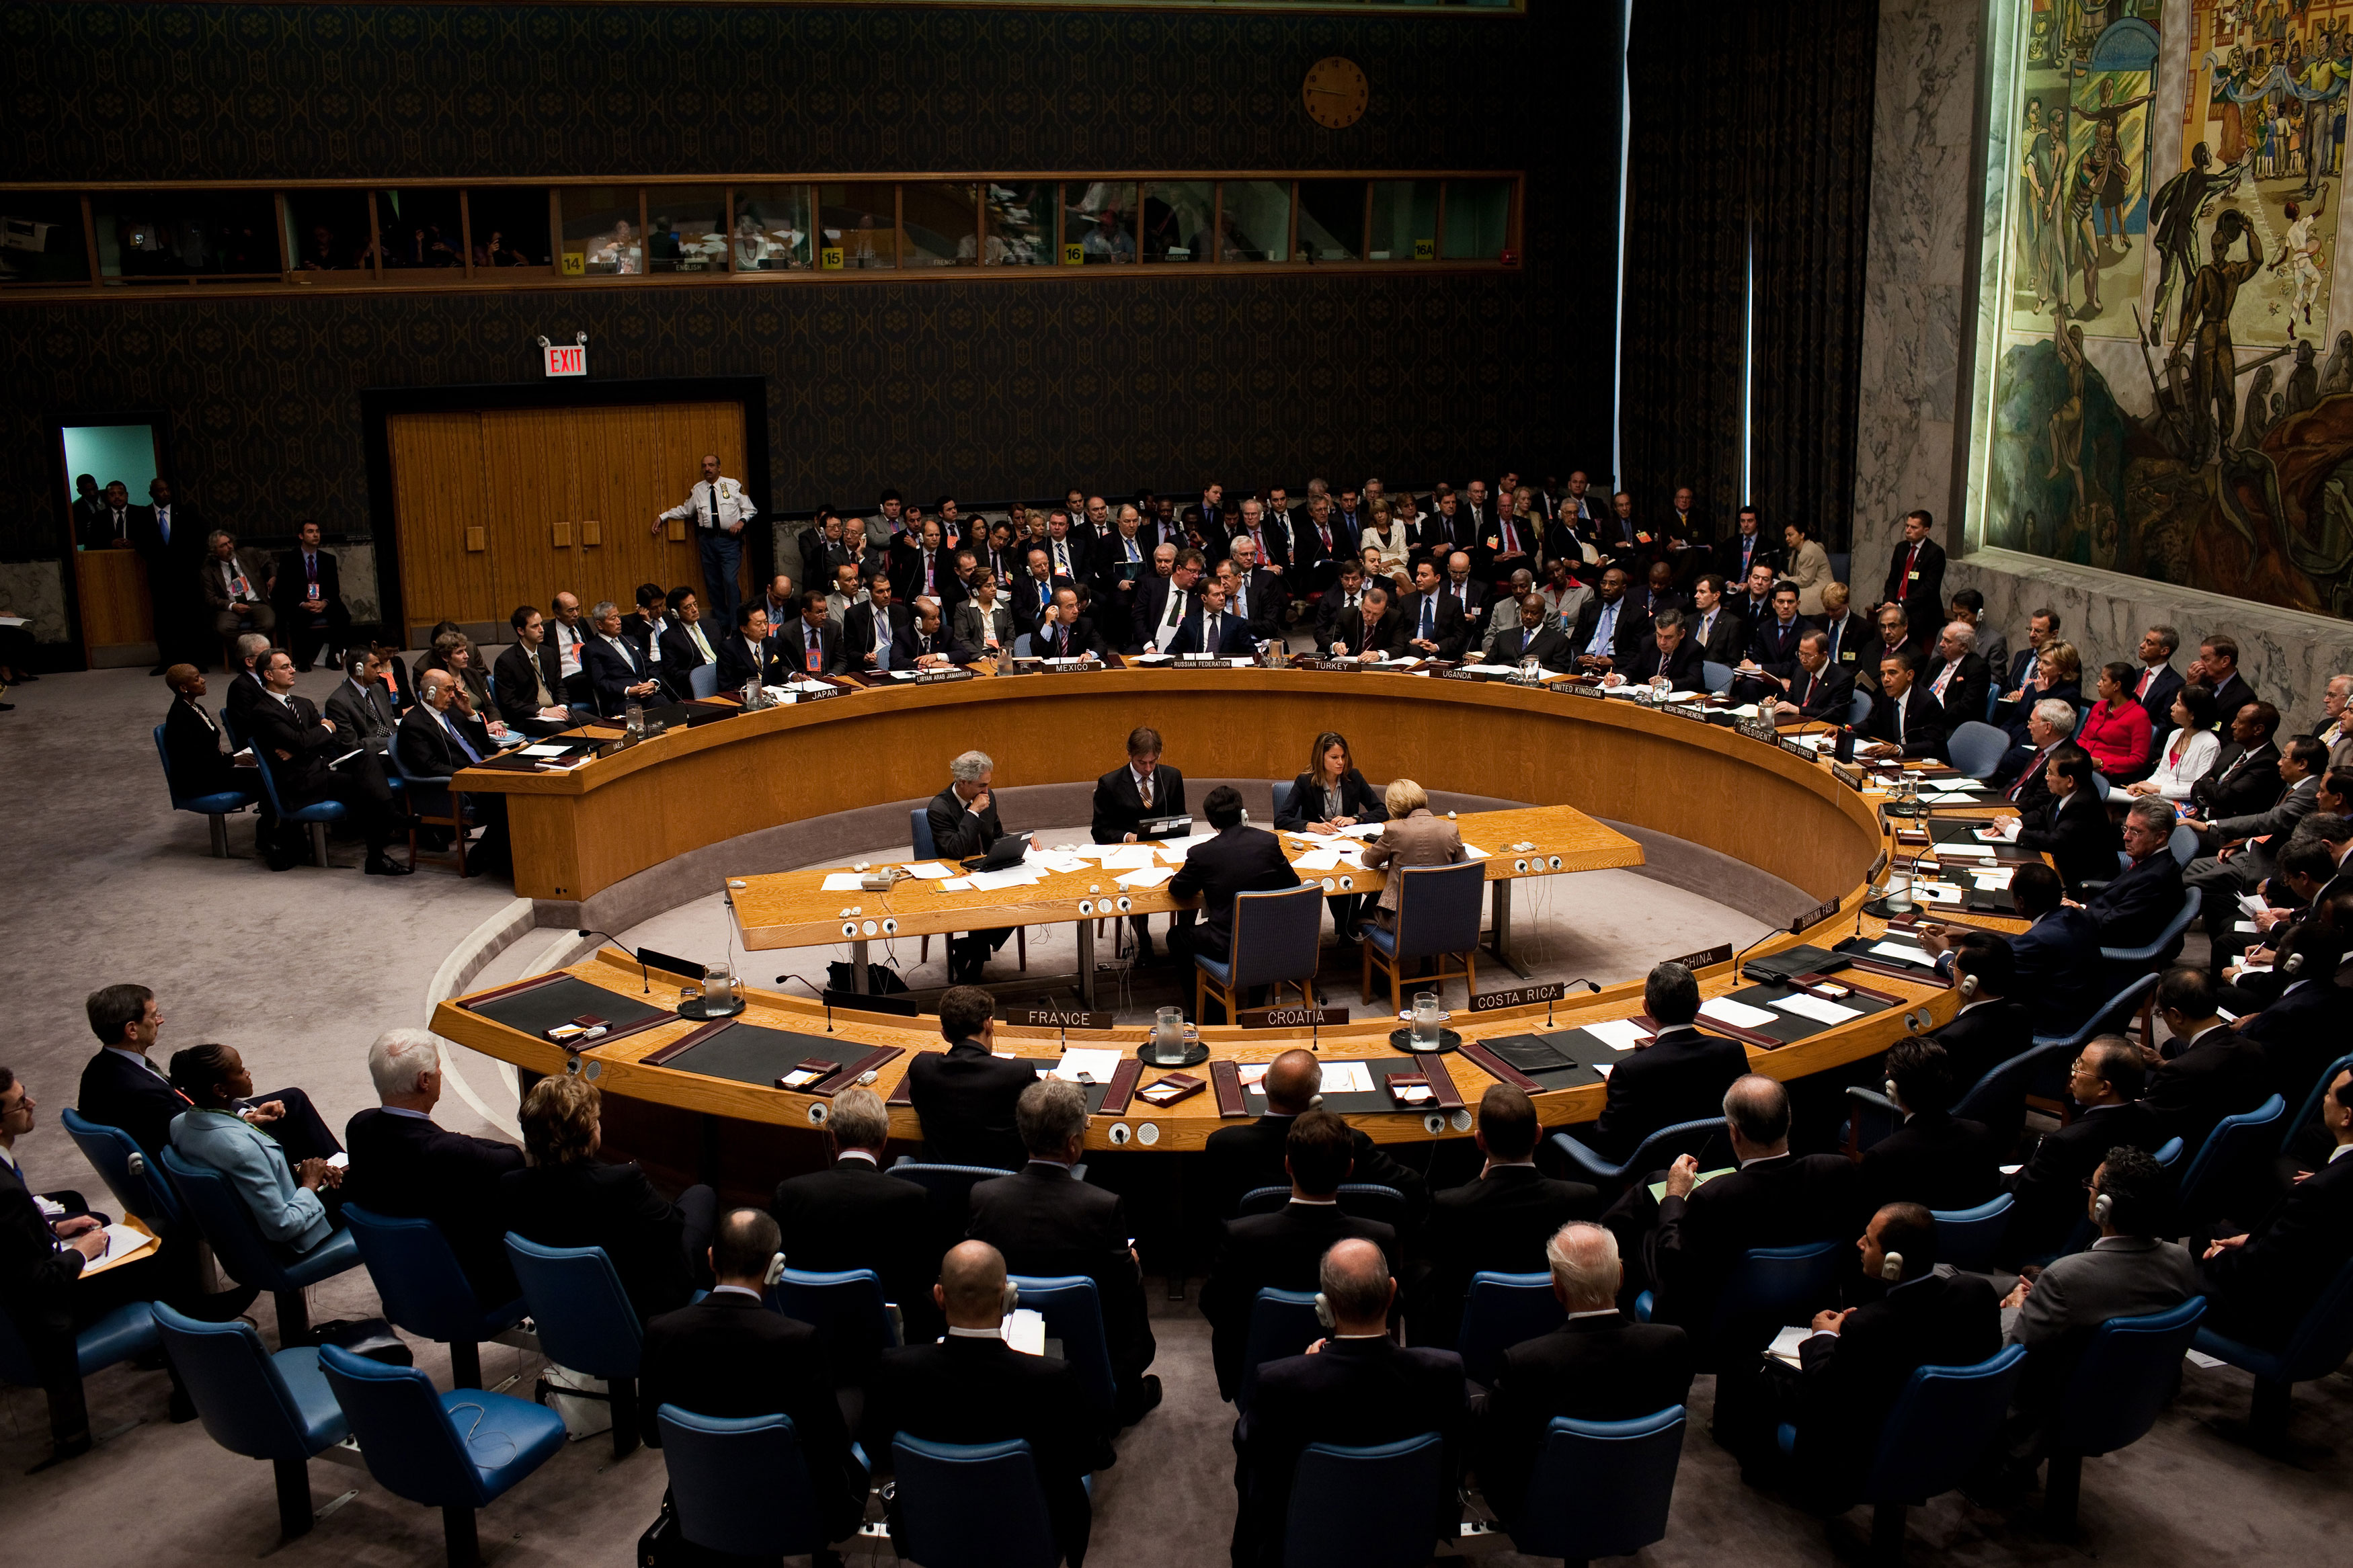 U.S. President Barack Obama chairs the United Nations Security Council.